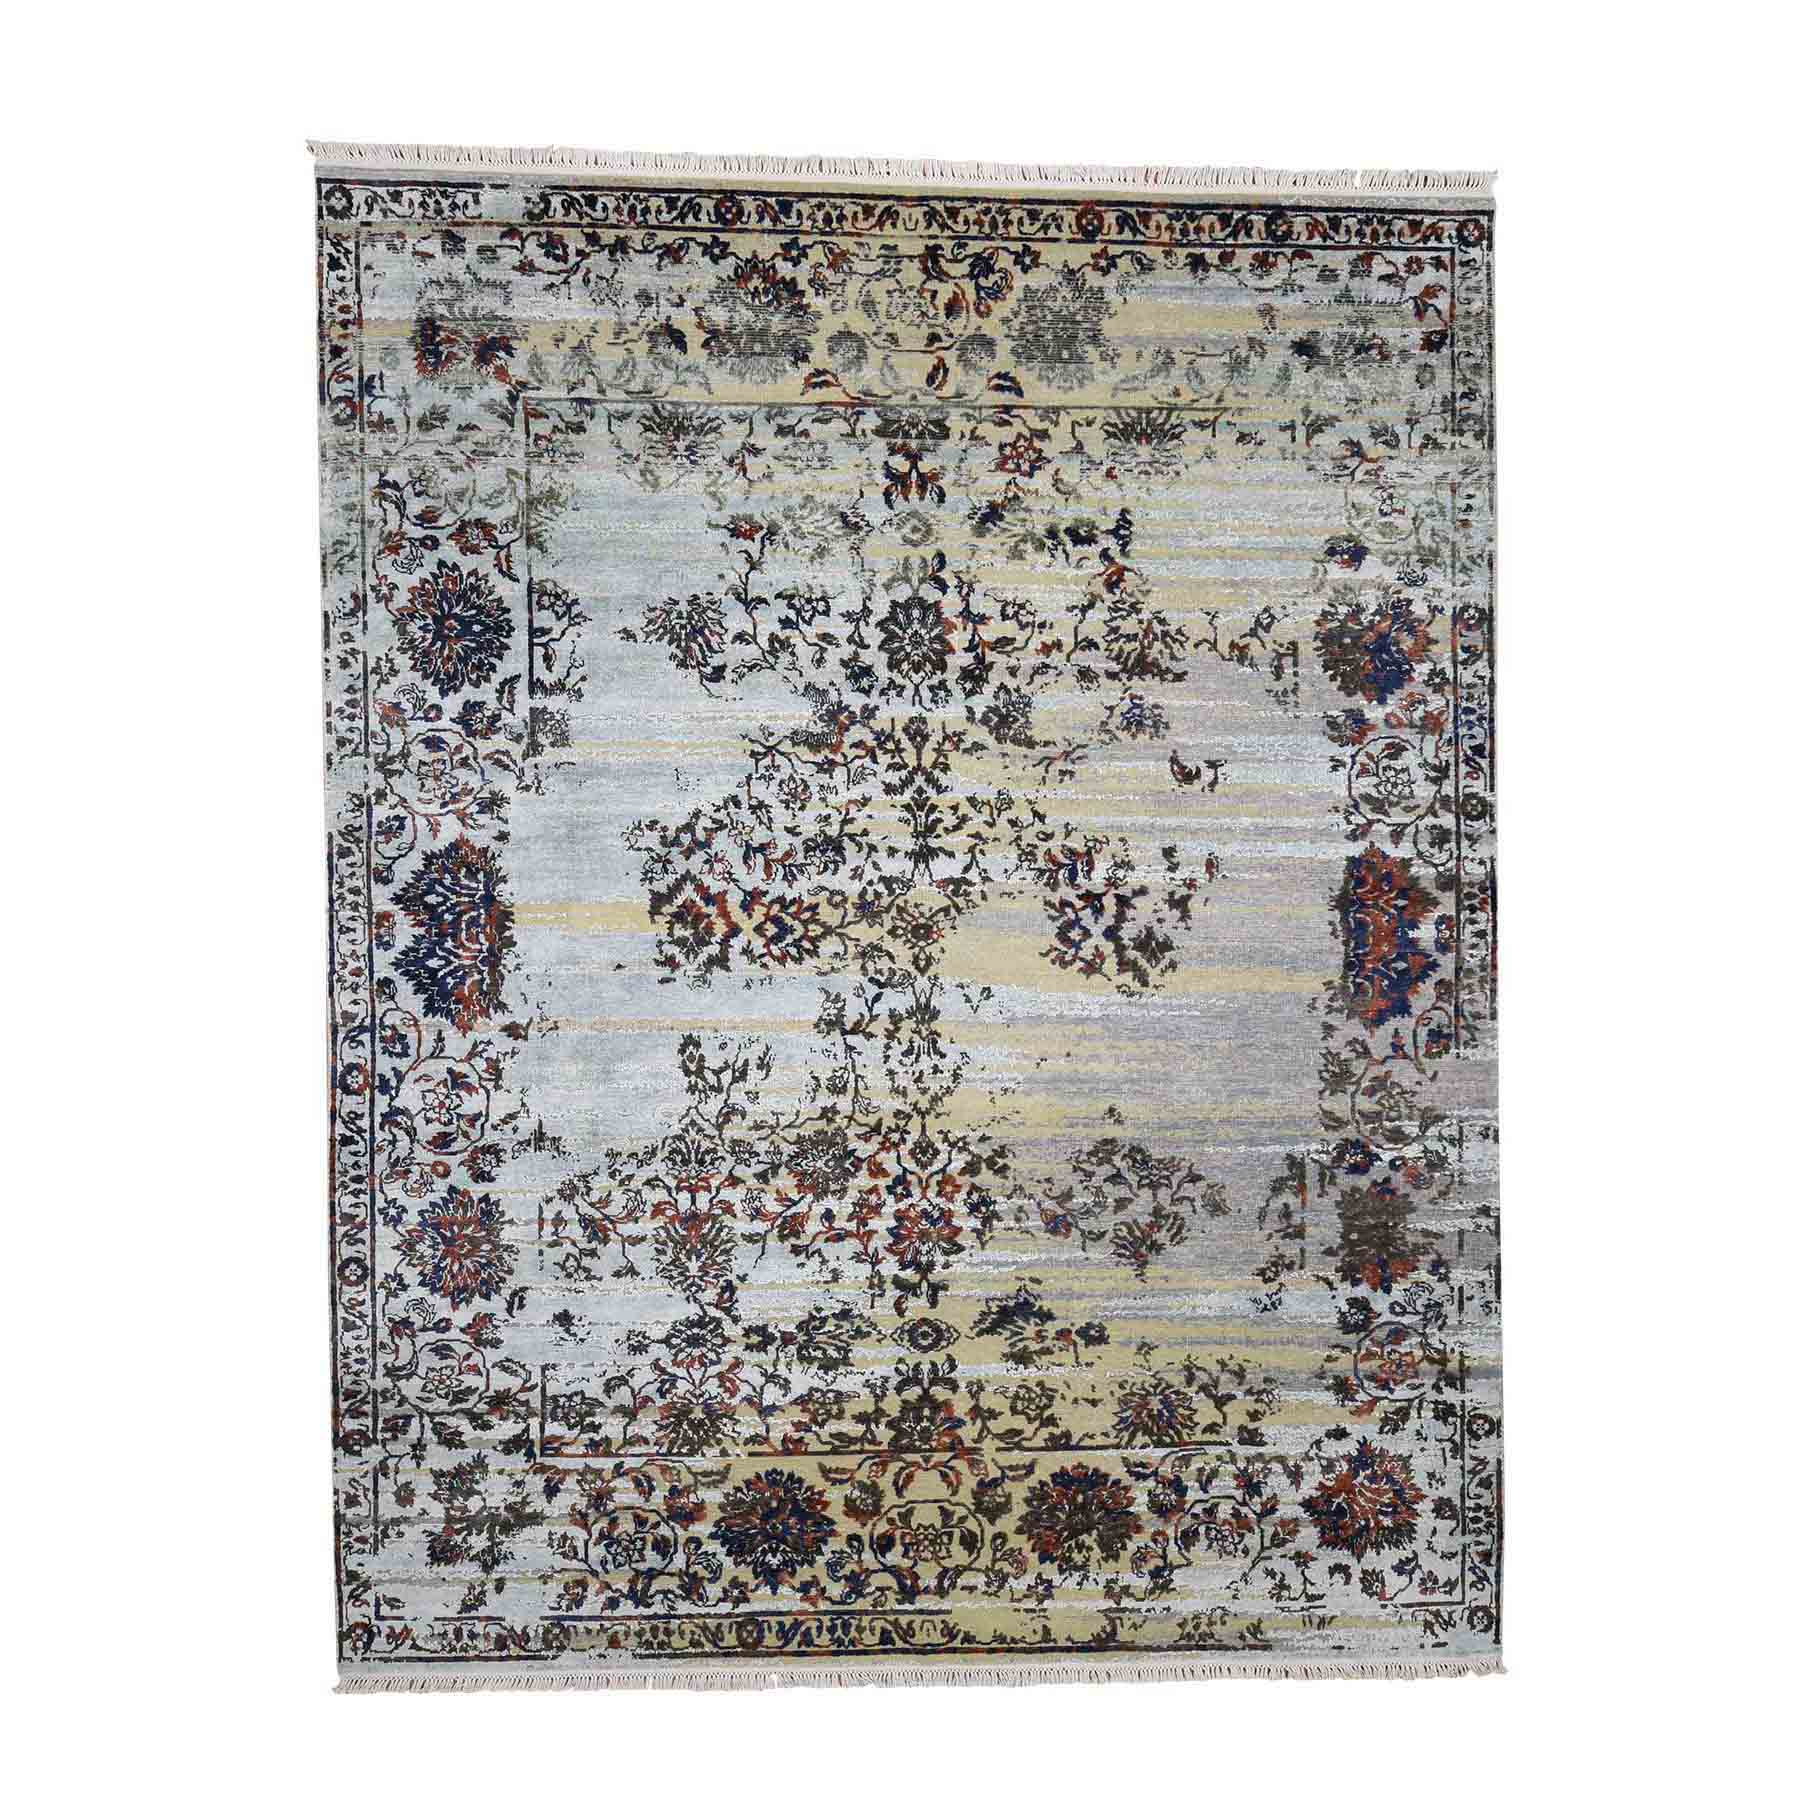 modern & contemporary rugs LUV367659